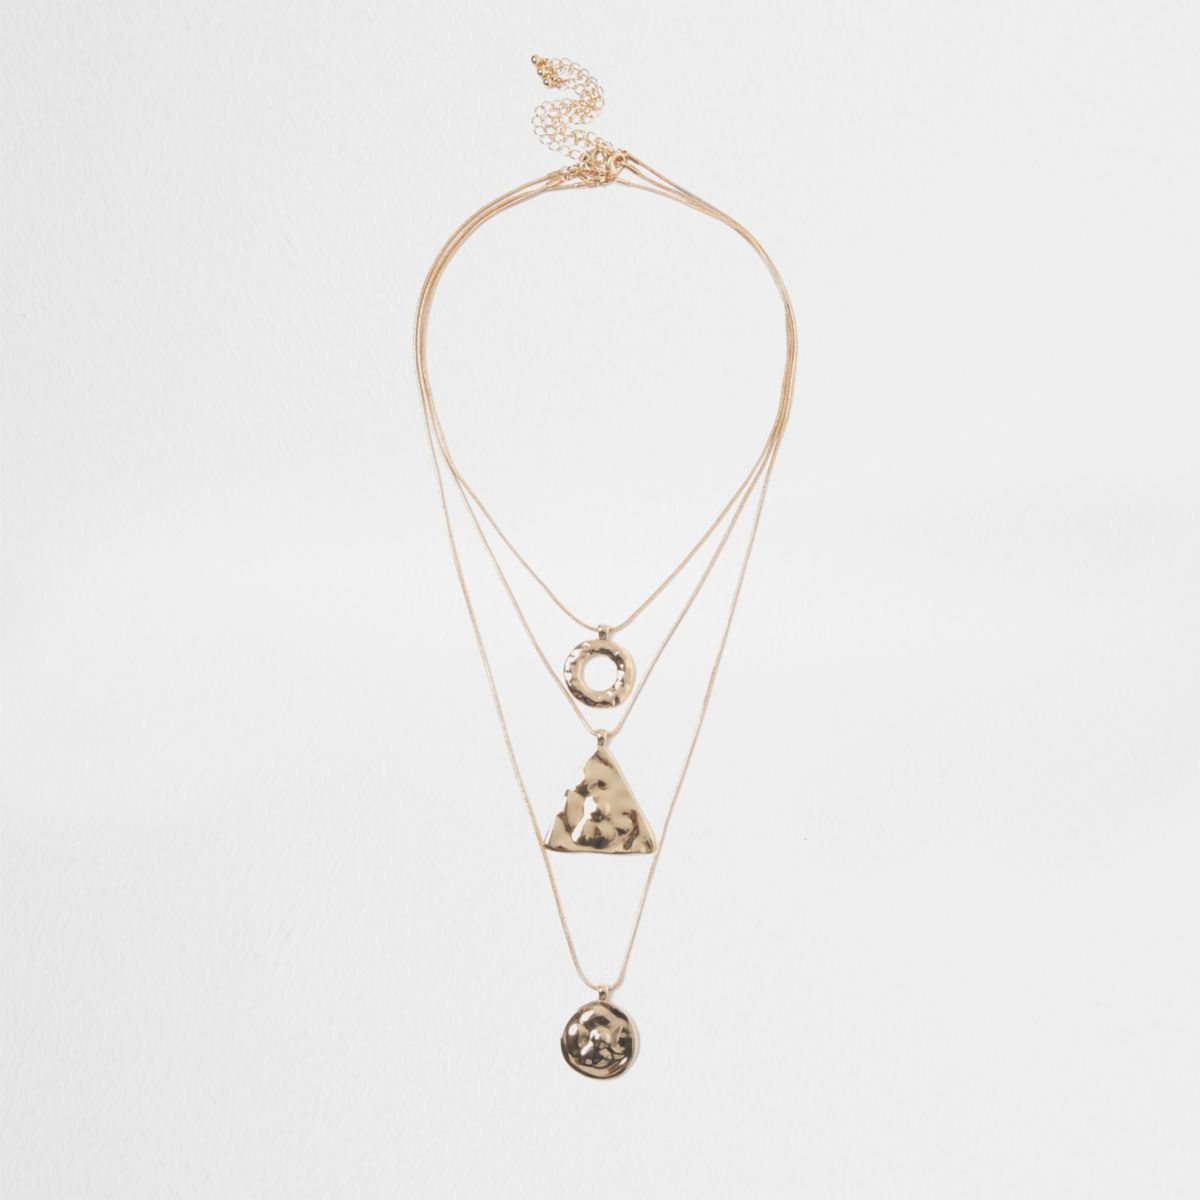 Gold tone multi row shape pendant necklace